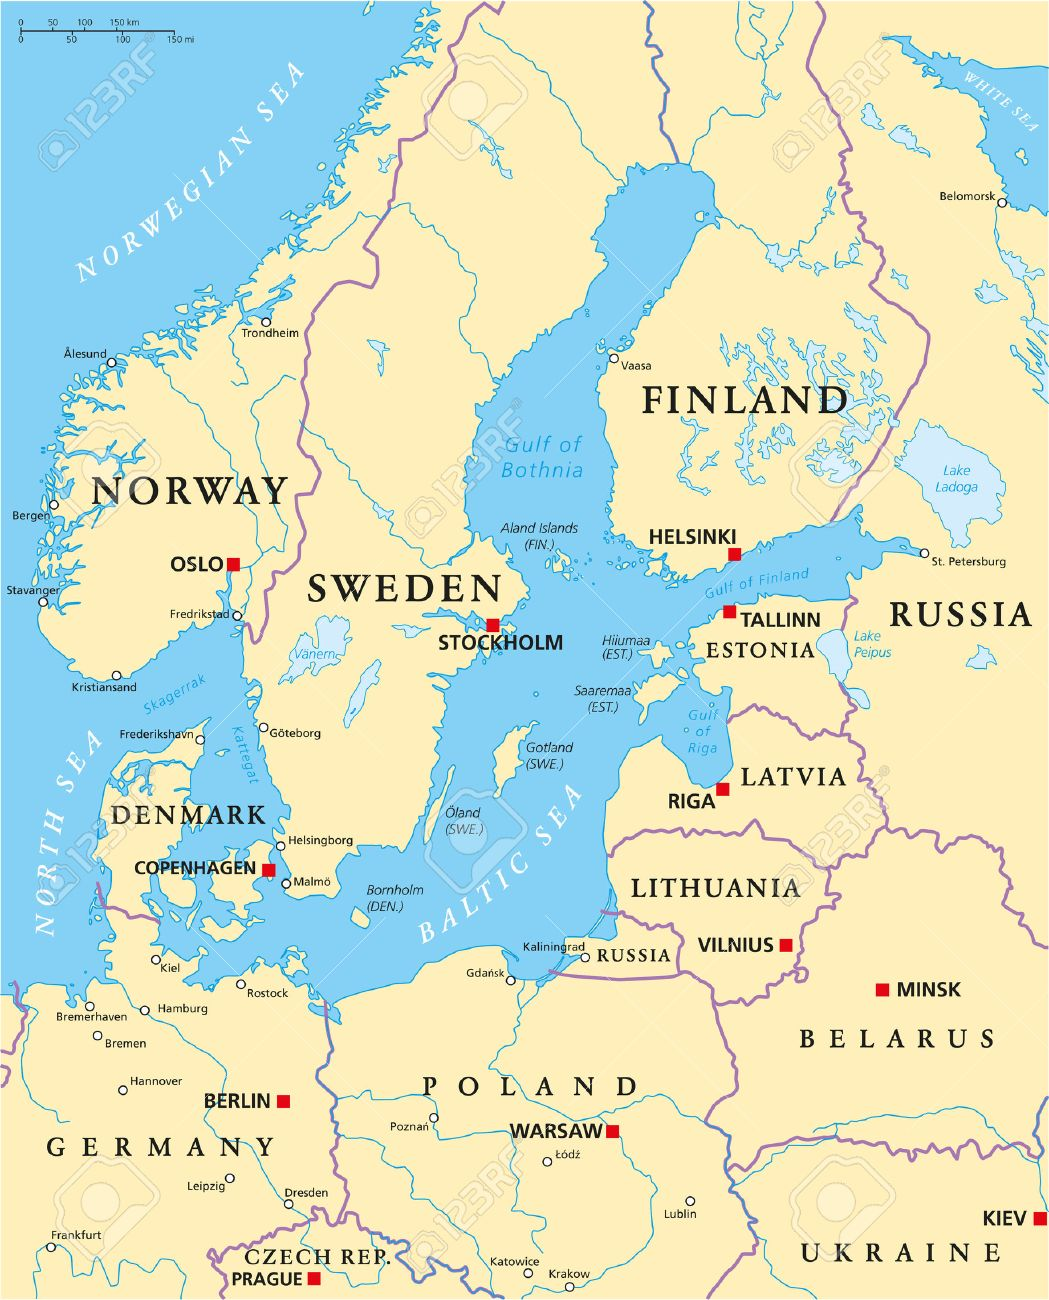 Baltic Sea Area Political Map With Capitals National Borders - Norway map rivers